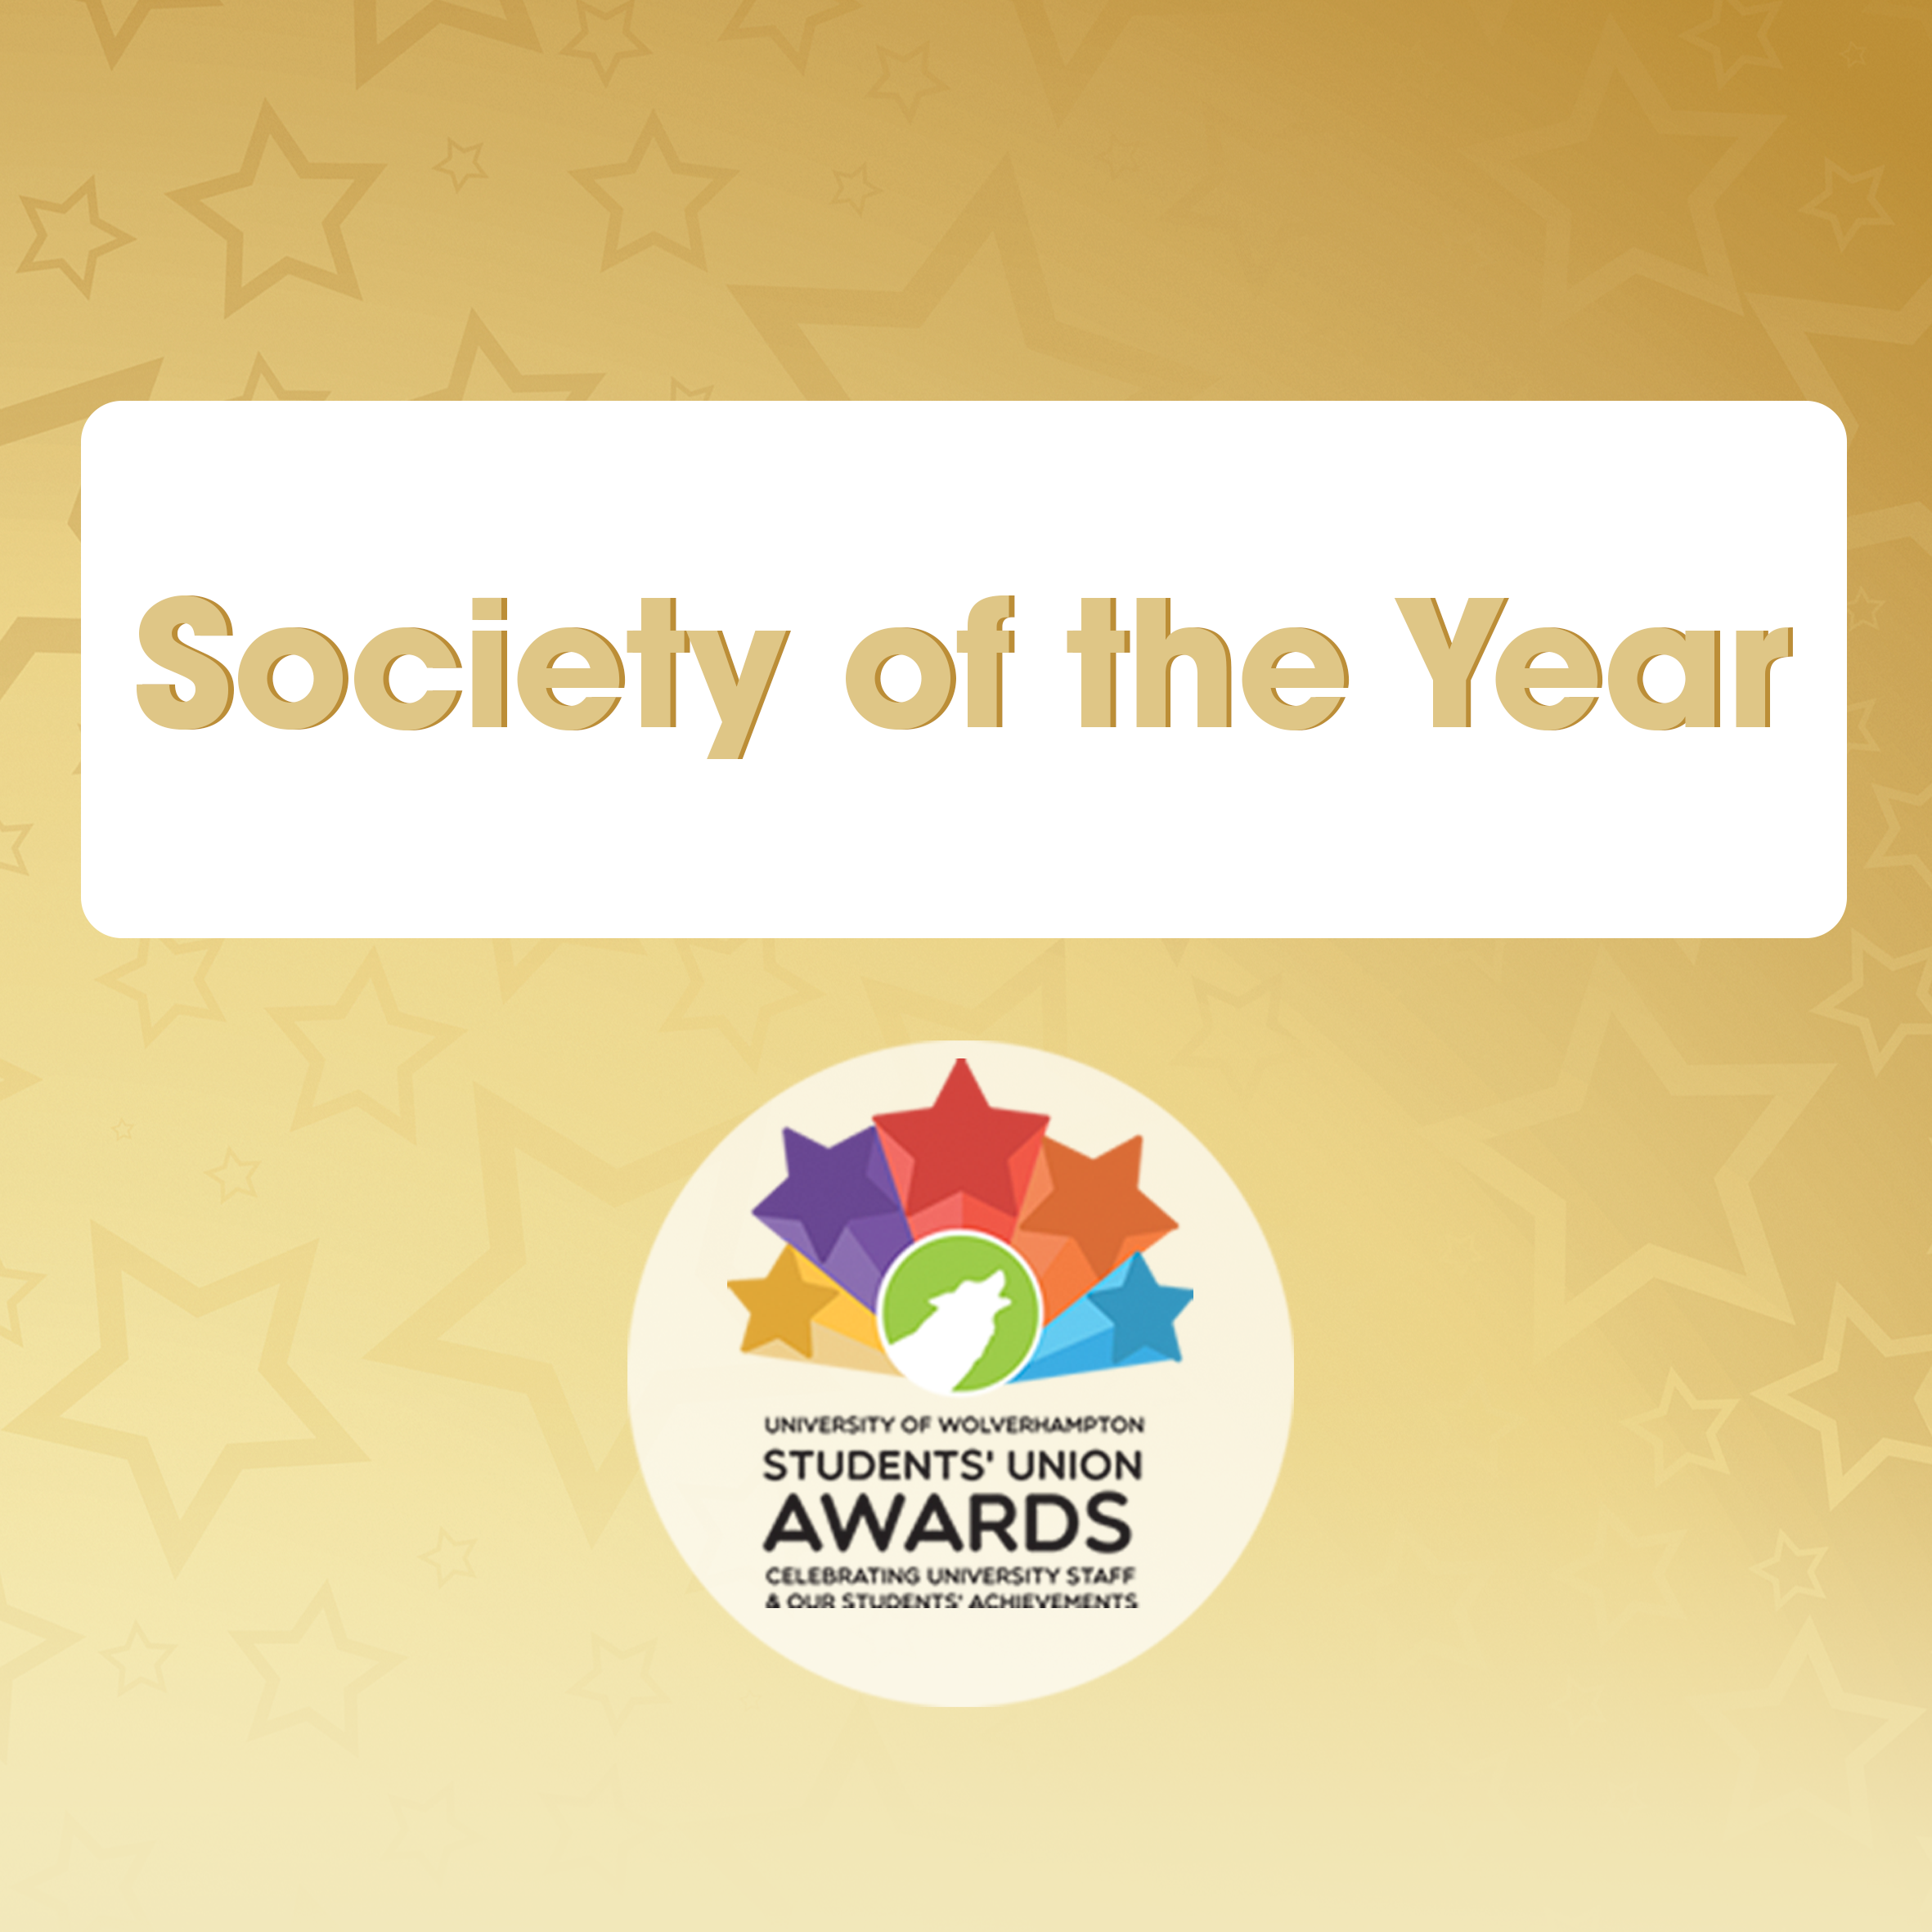 Society of the Year